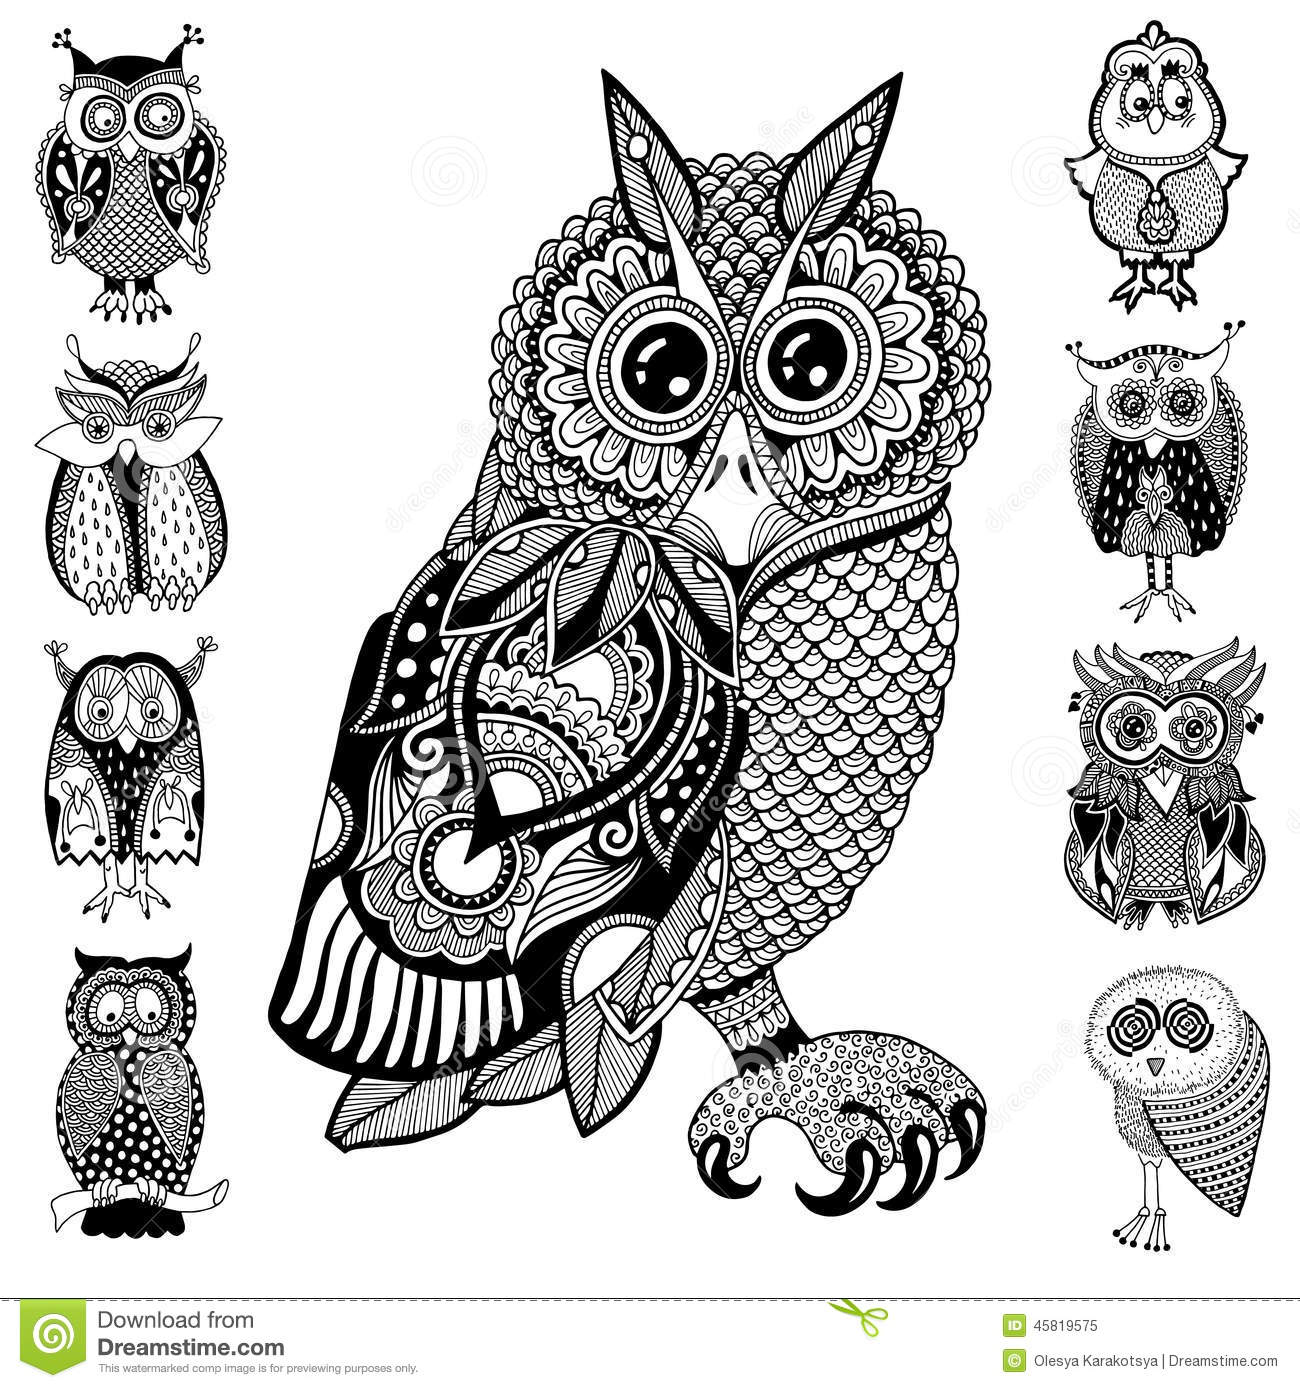 Illustrations originales de hibou dessin de main d 39 encre - Dessins hibou ...